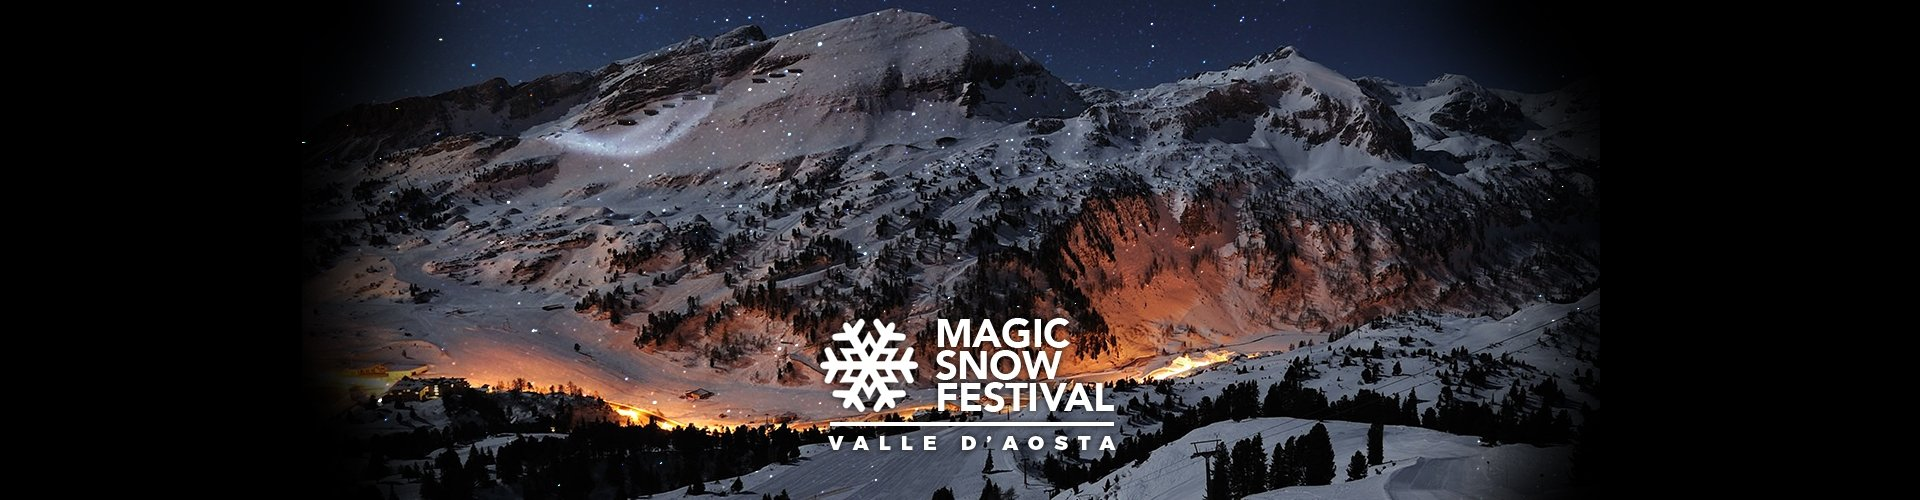 Magic Snow Festival